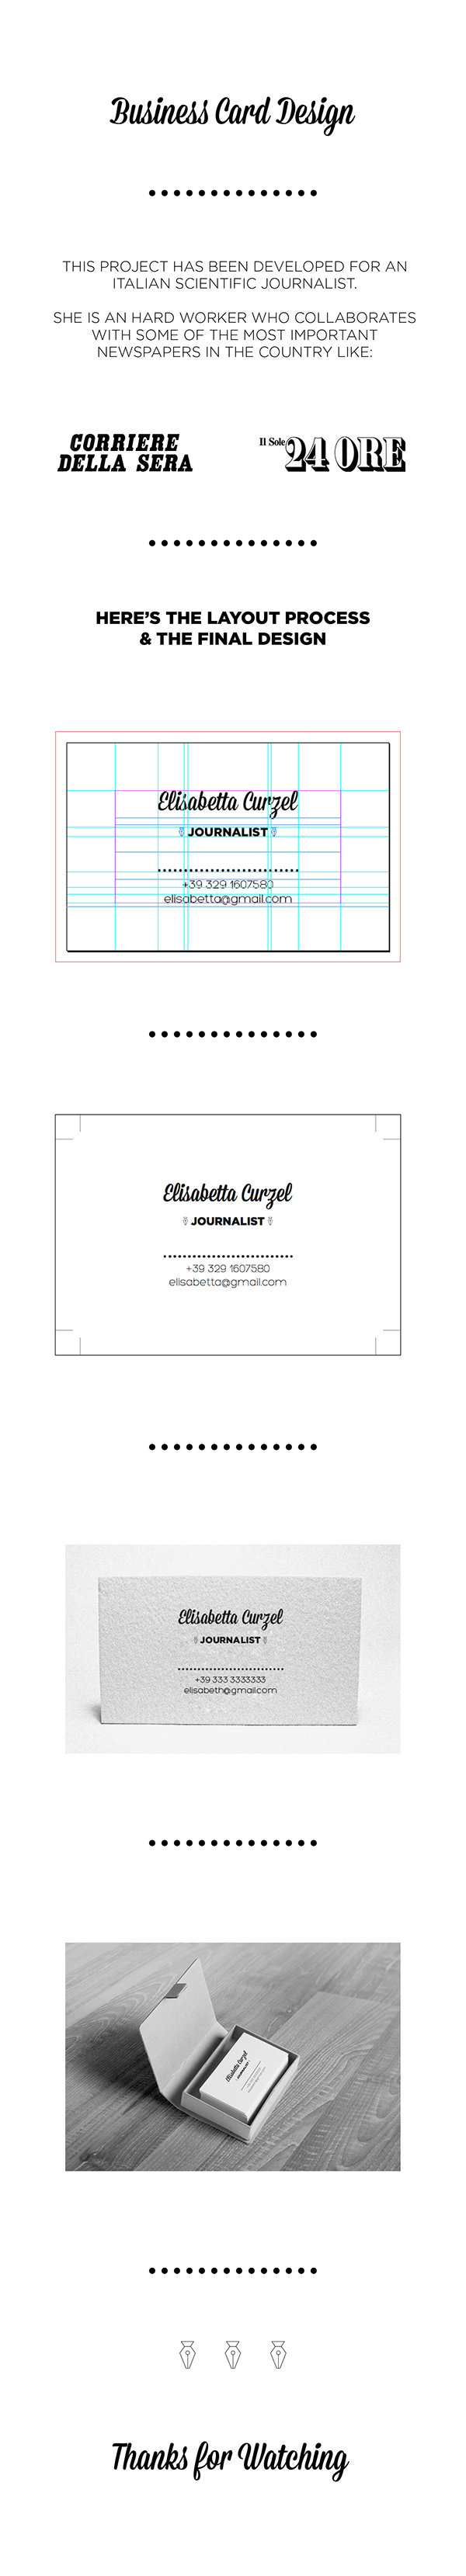 Journalist Business Card Design on Student Show